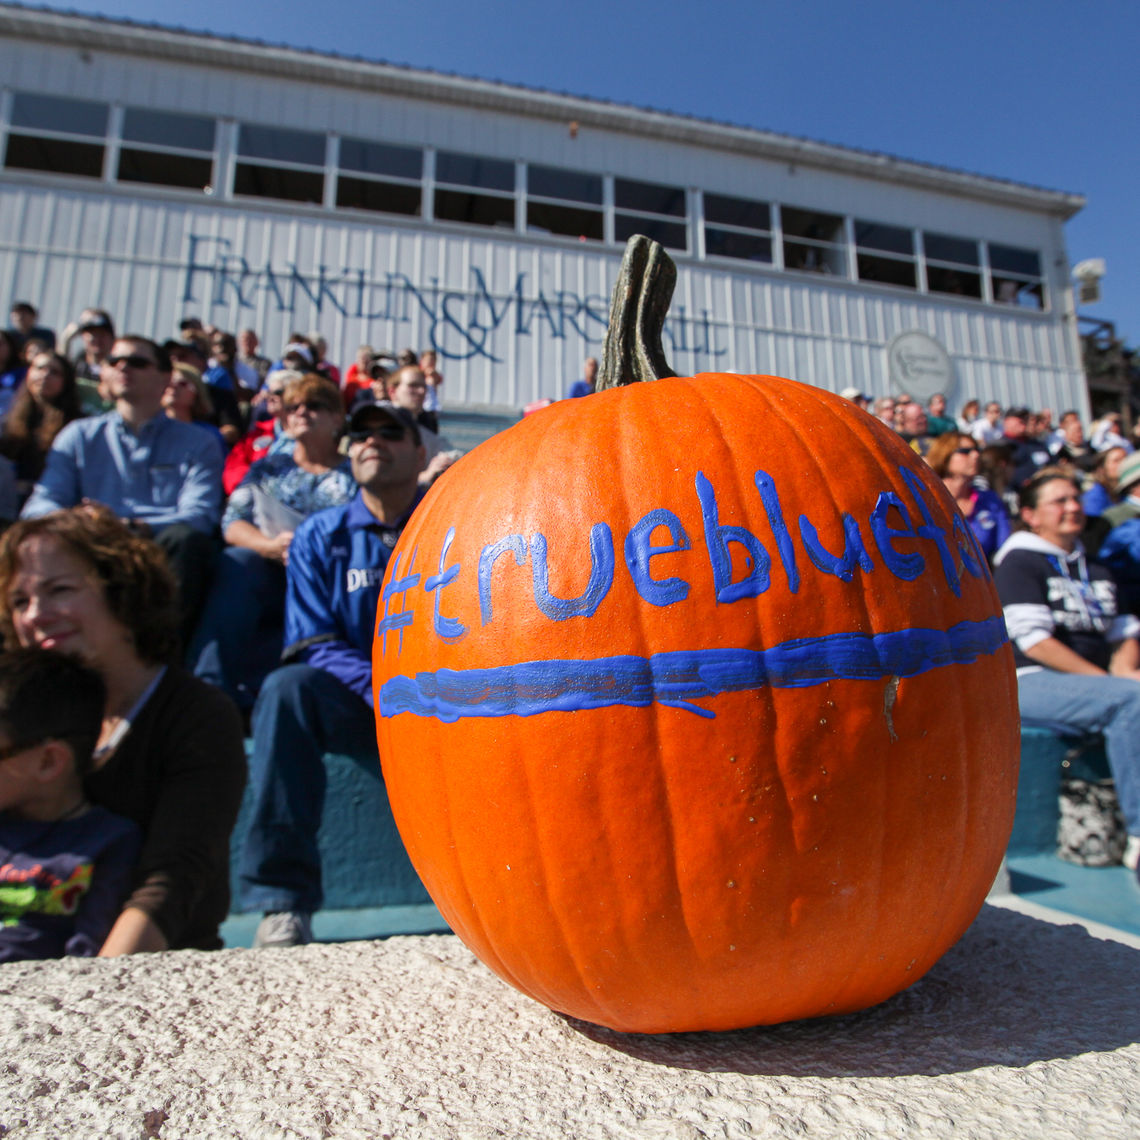 Pumpkins such as this one, sporting the hash tag #truebluefandm, abound on a brisk Saturday in autumn, perfect football weather.